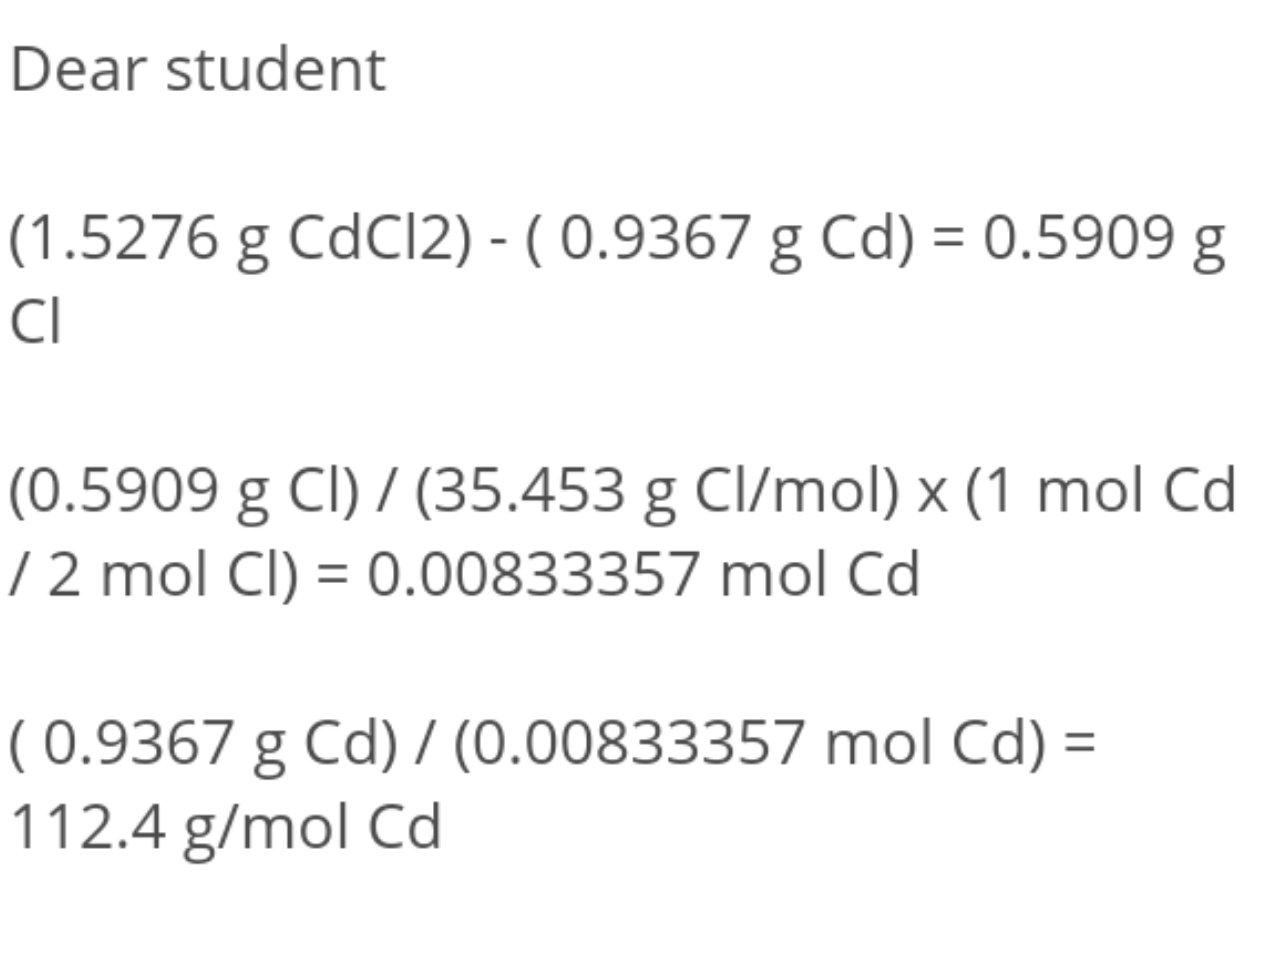 1.5276g of CdCl2 was found to contain 0.9367g of cadmium. Calculate the atomic weight of cadmium.